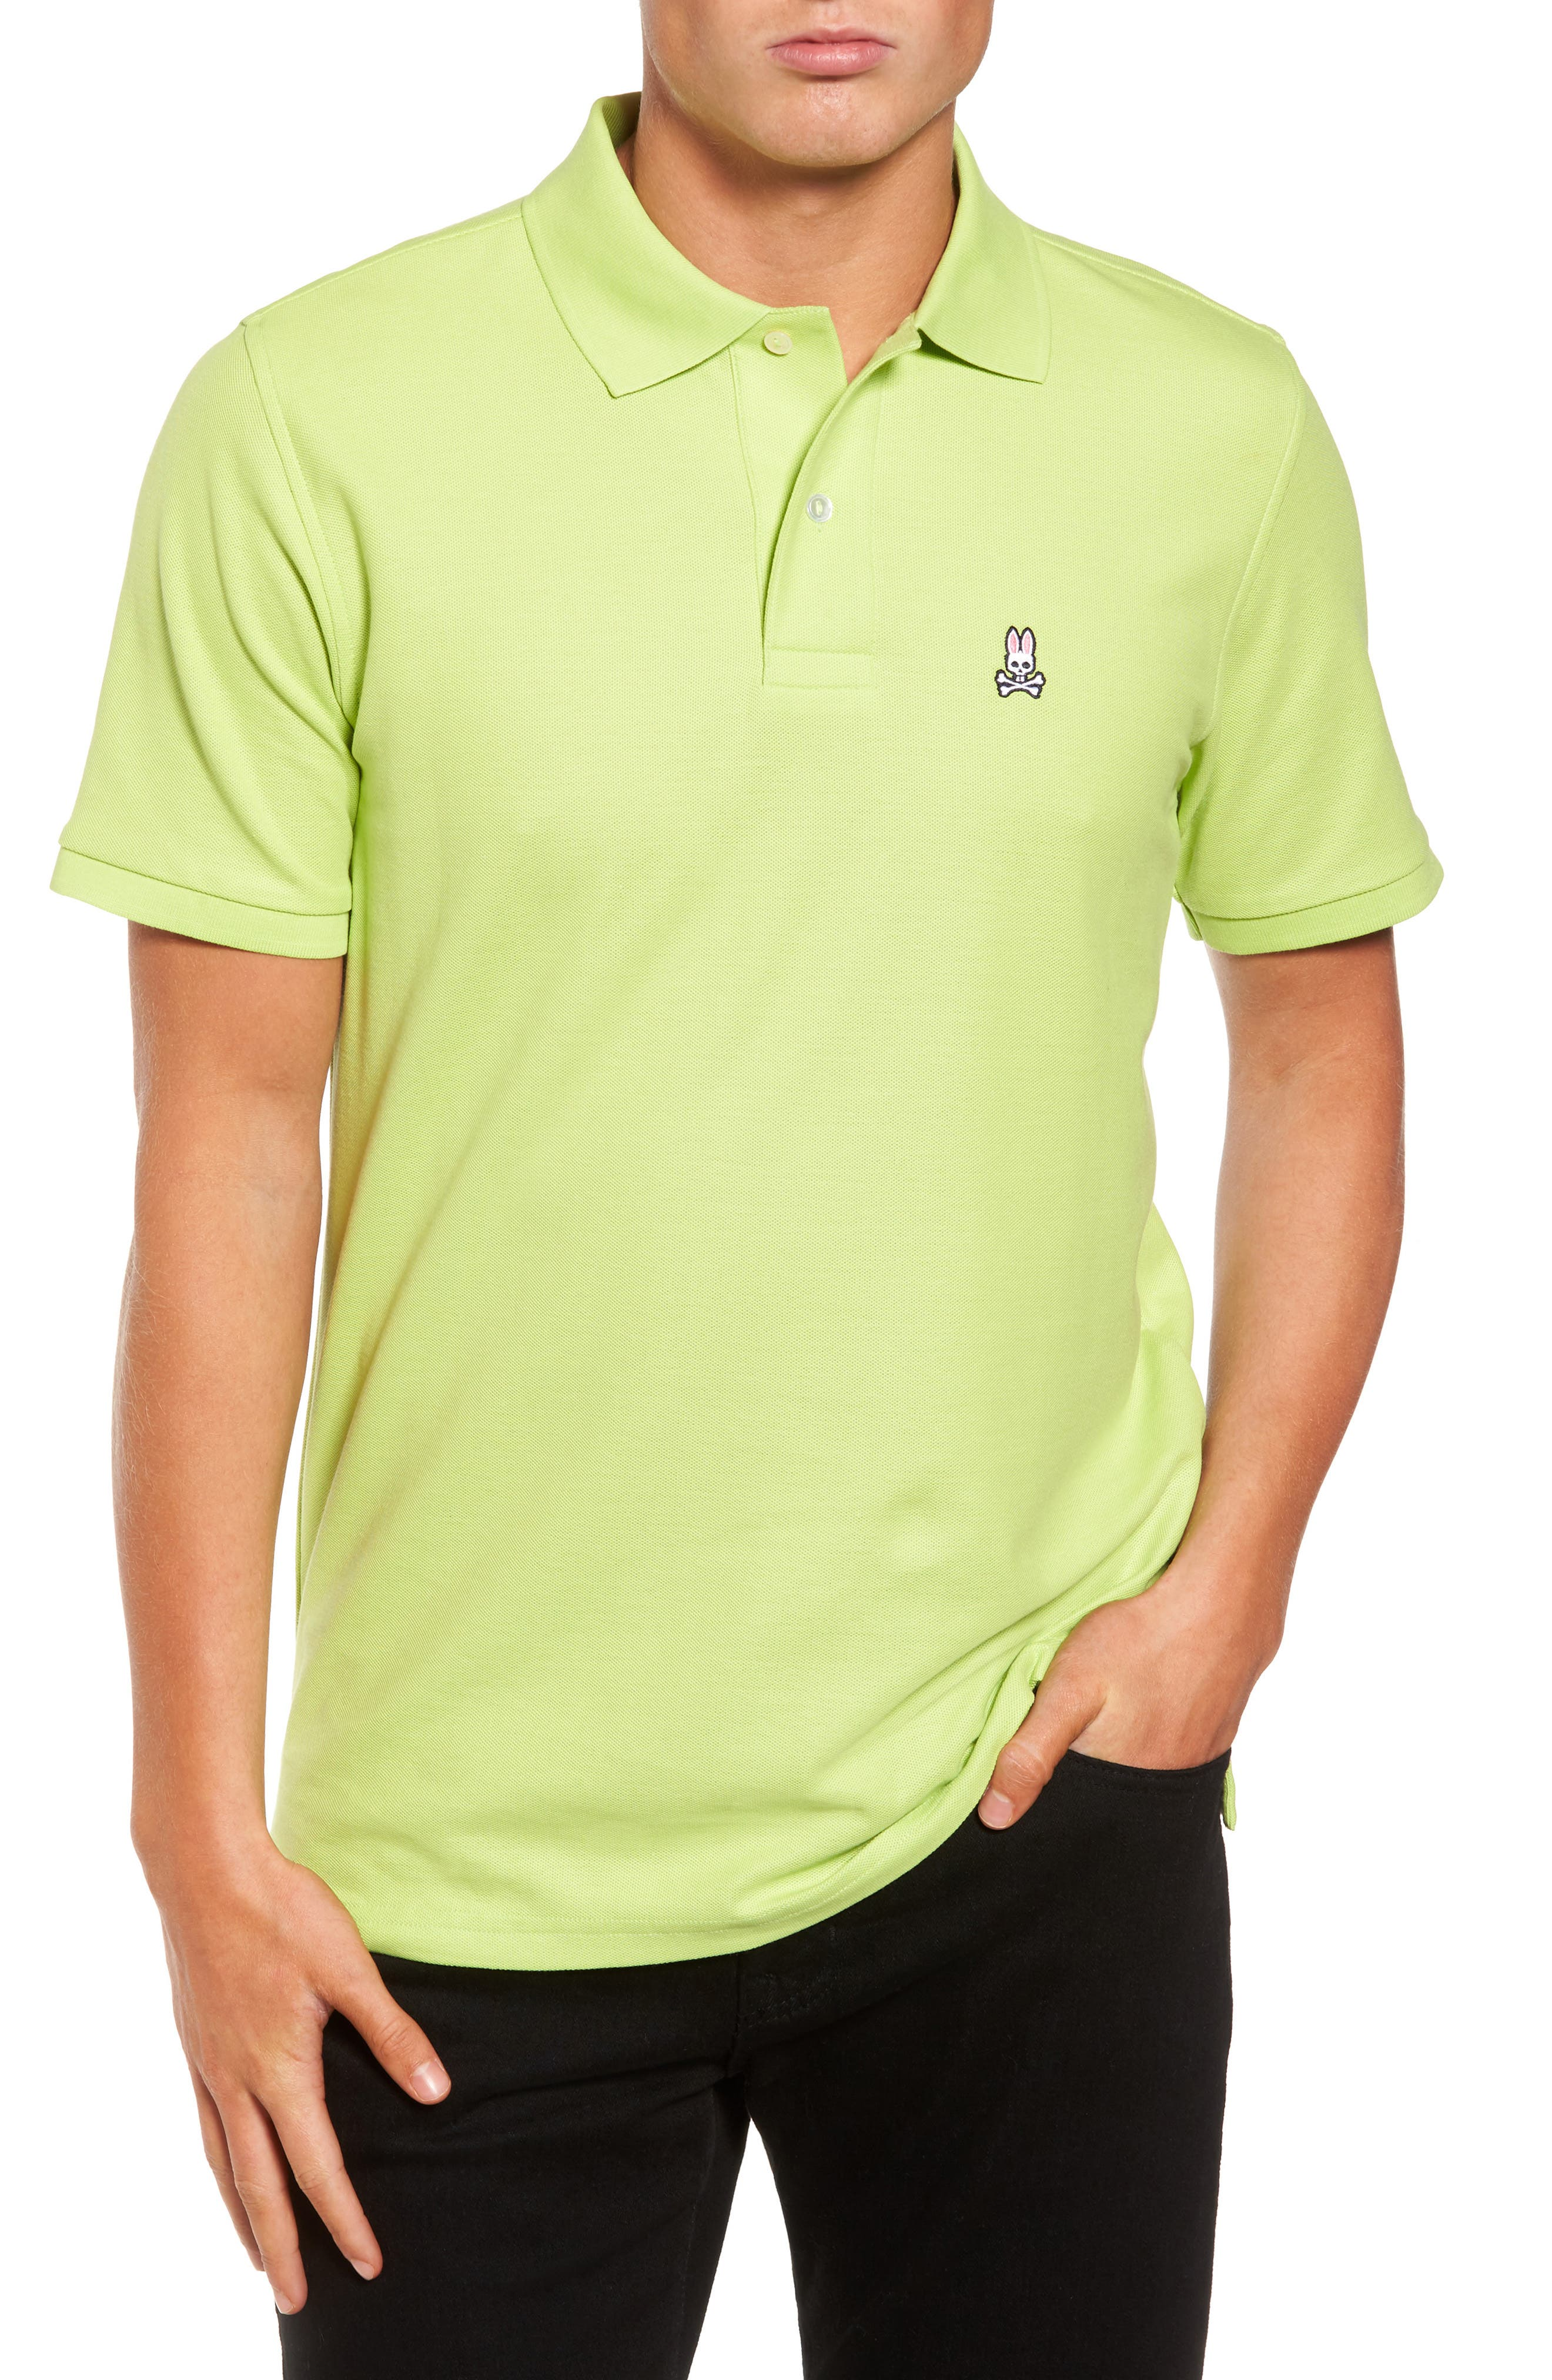 Alternate Image 1 Selected - Psycho Bunny Classic Piqué Polo